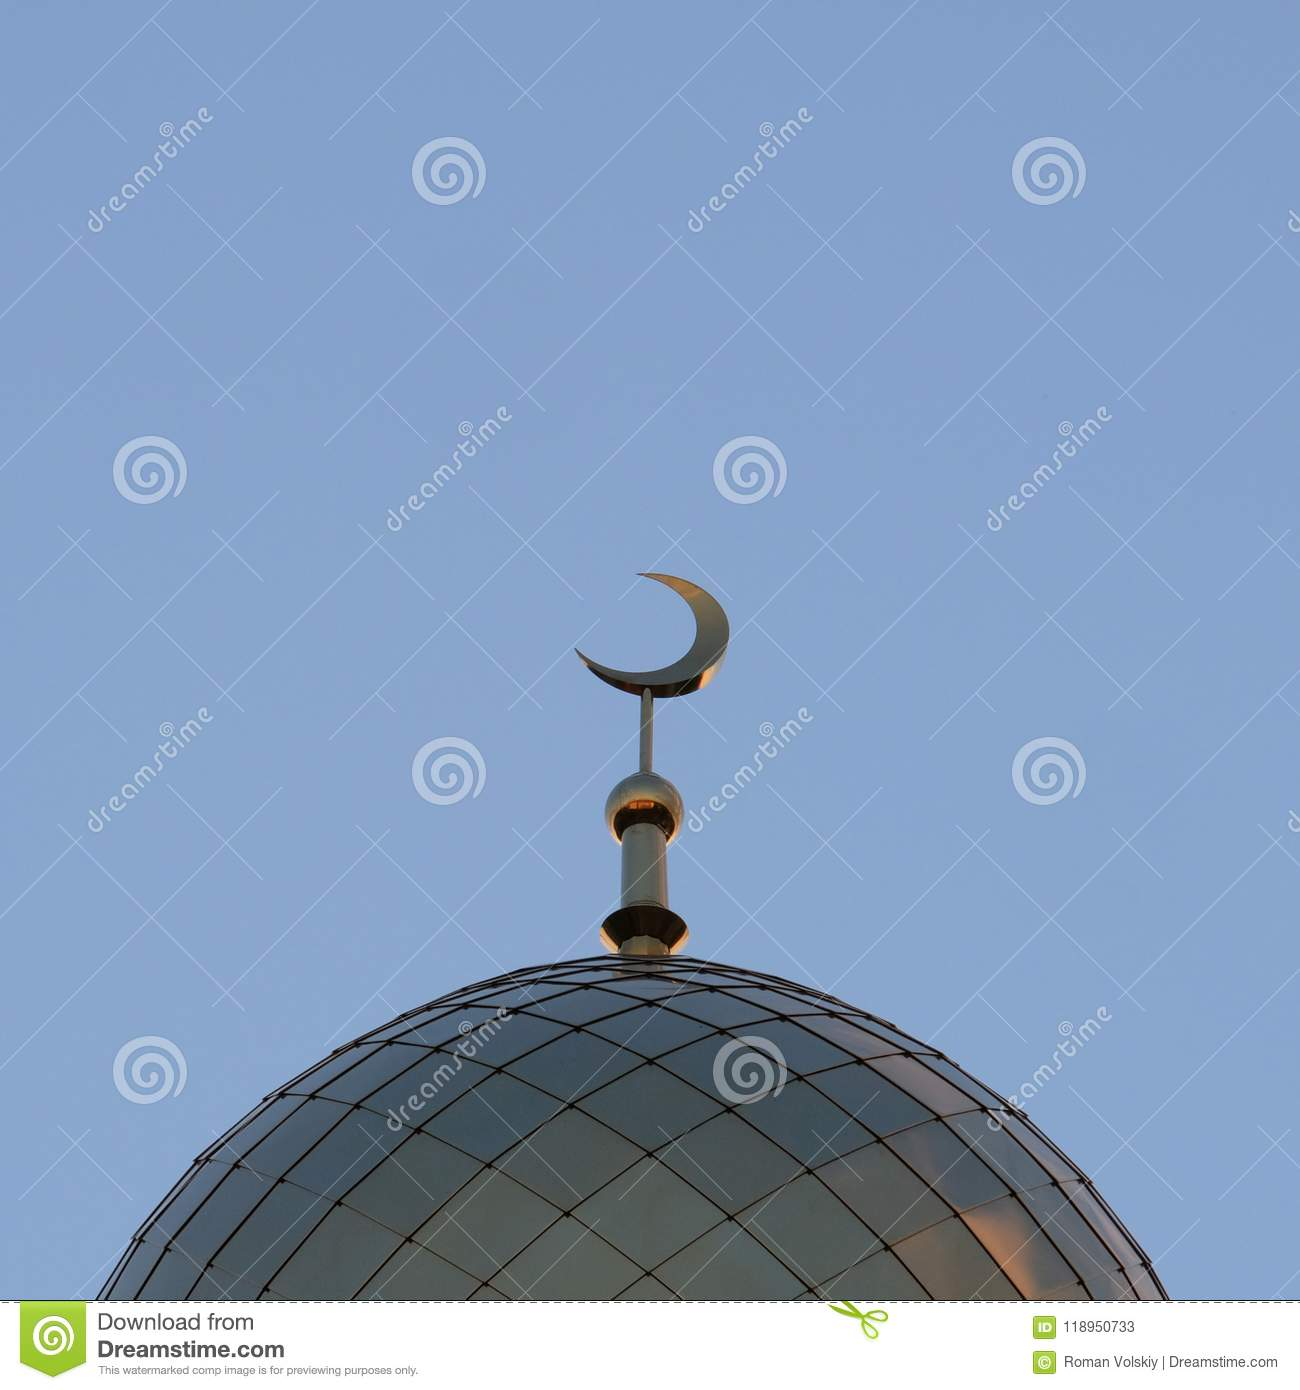 The Symbol Of Islam Is A Golden Crescent Moon On Top Of The Mosque